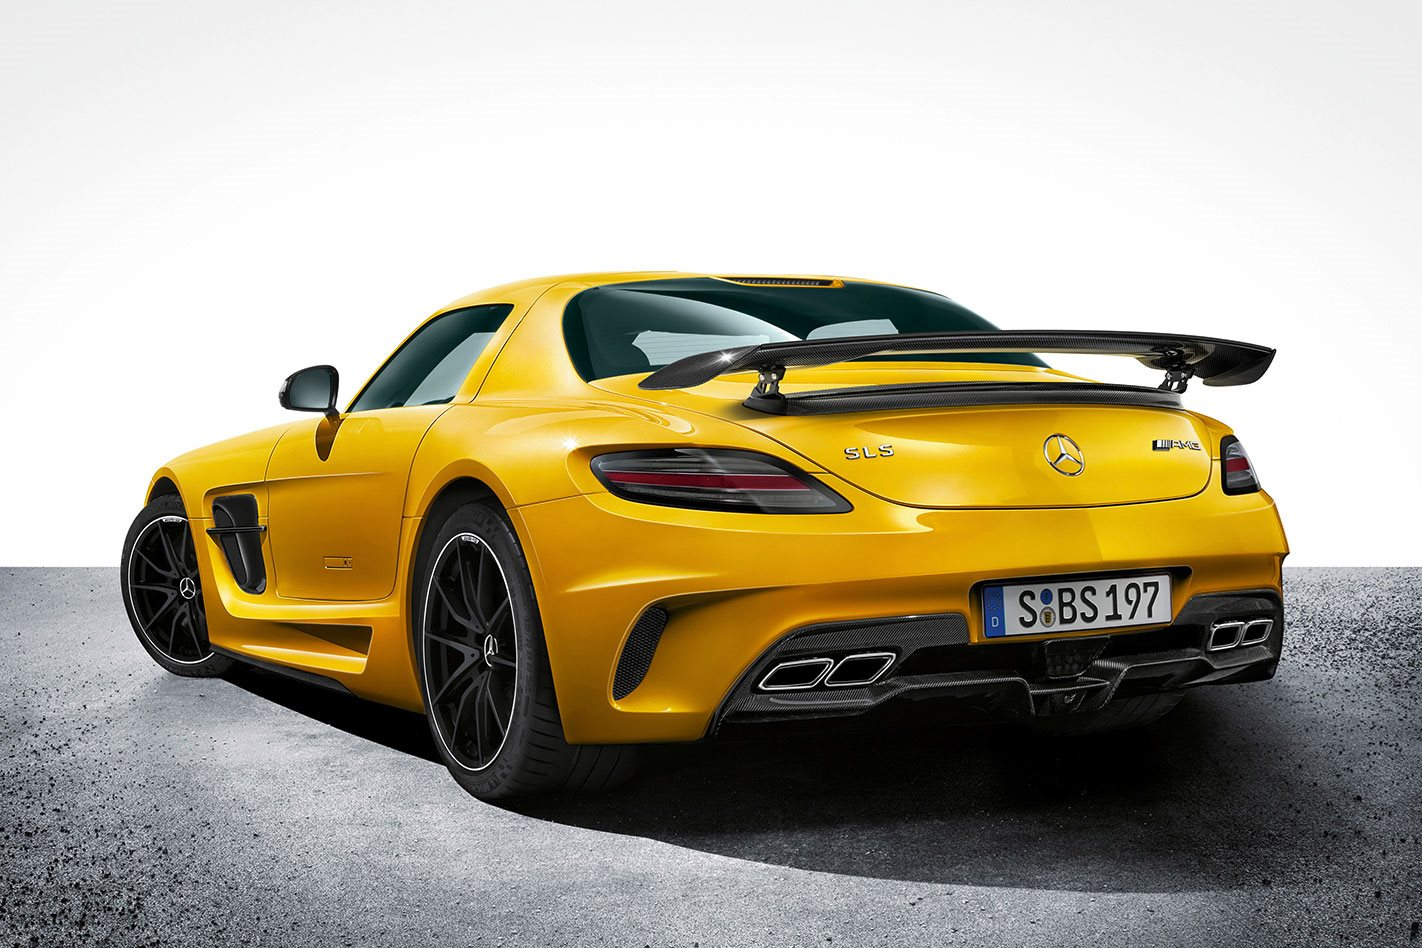 Mercedes-AMG GT 4-Door Coupe Is A Smart-Looking 630HP Bruiser